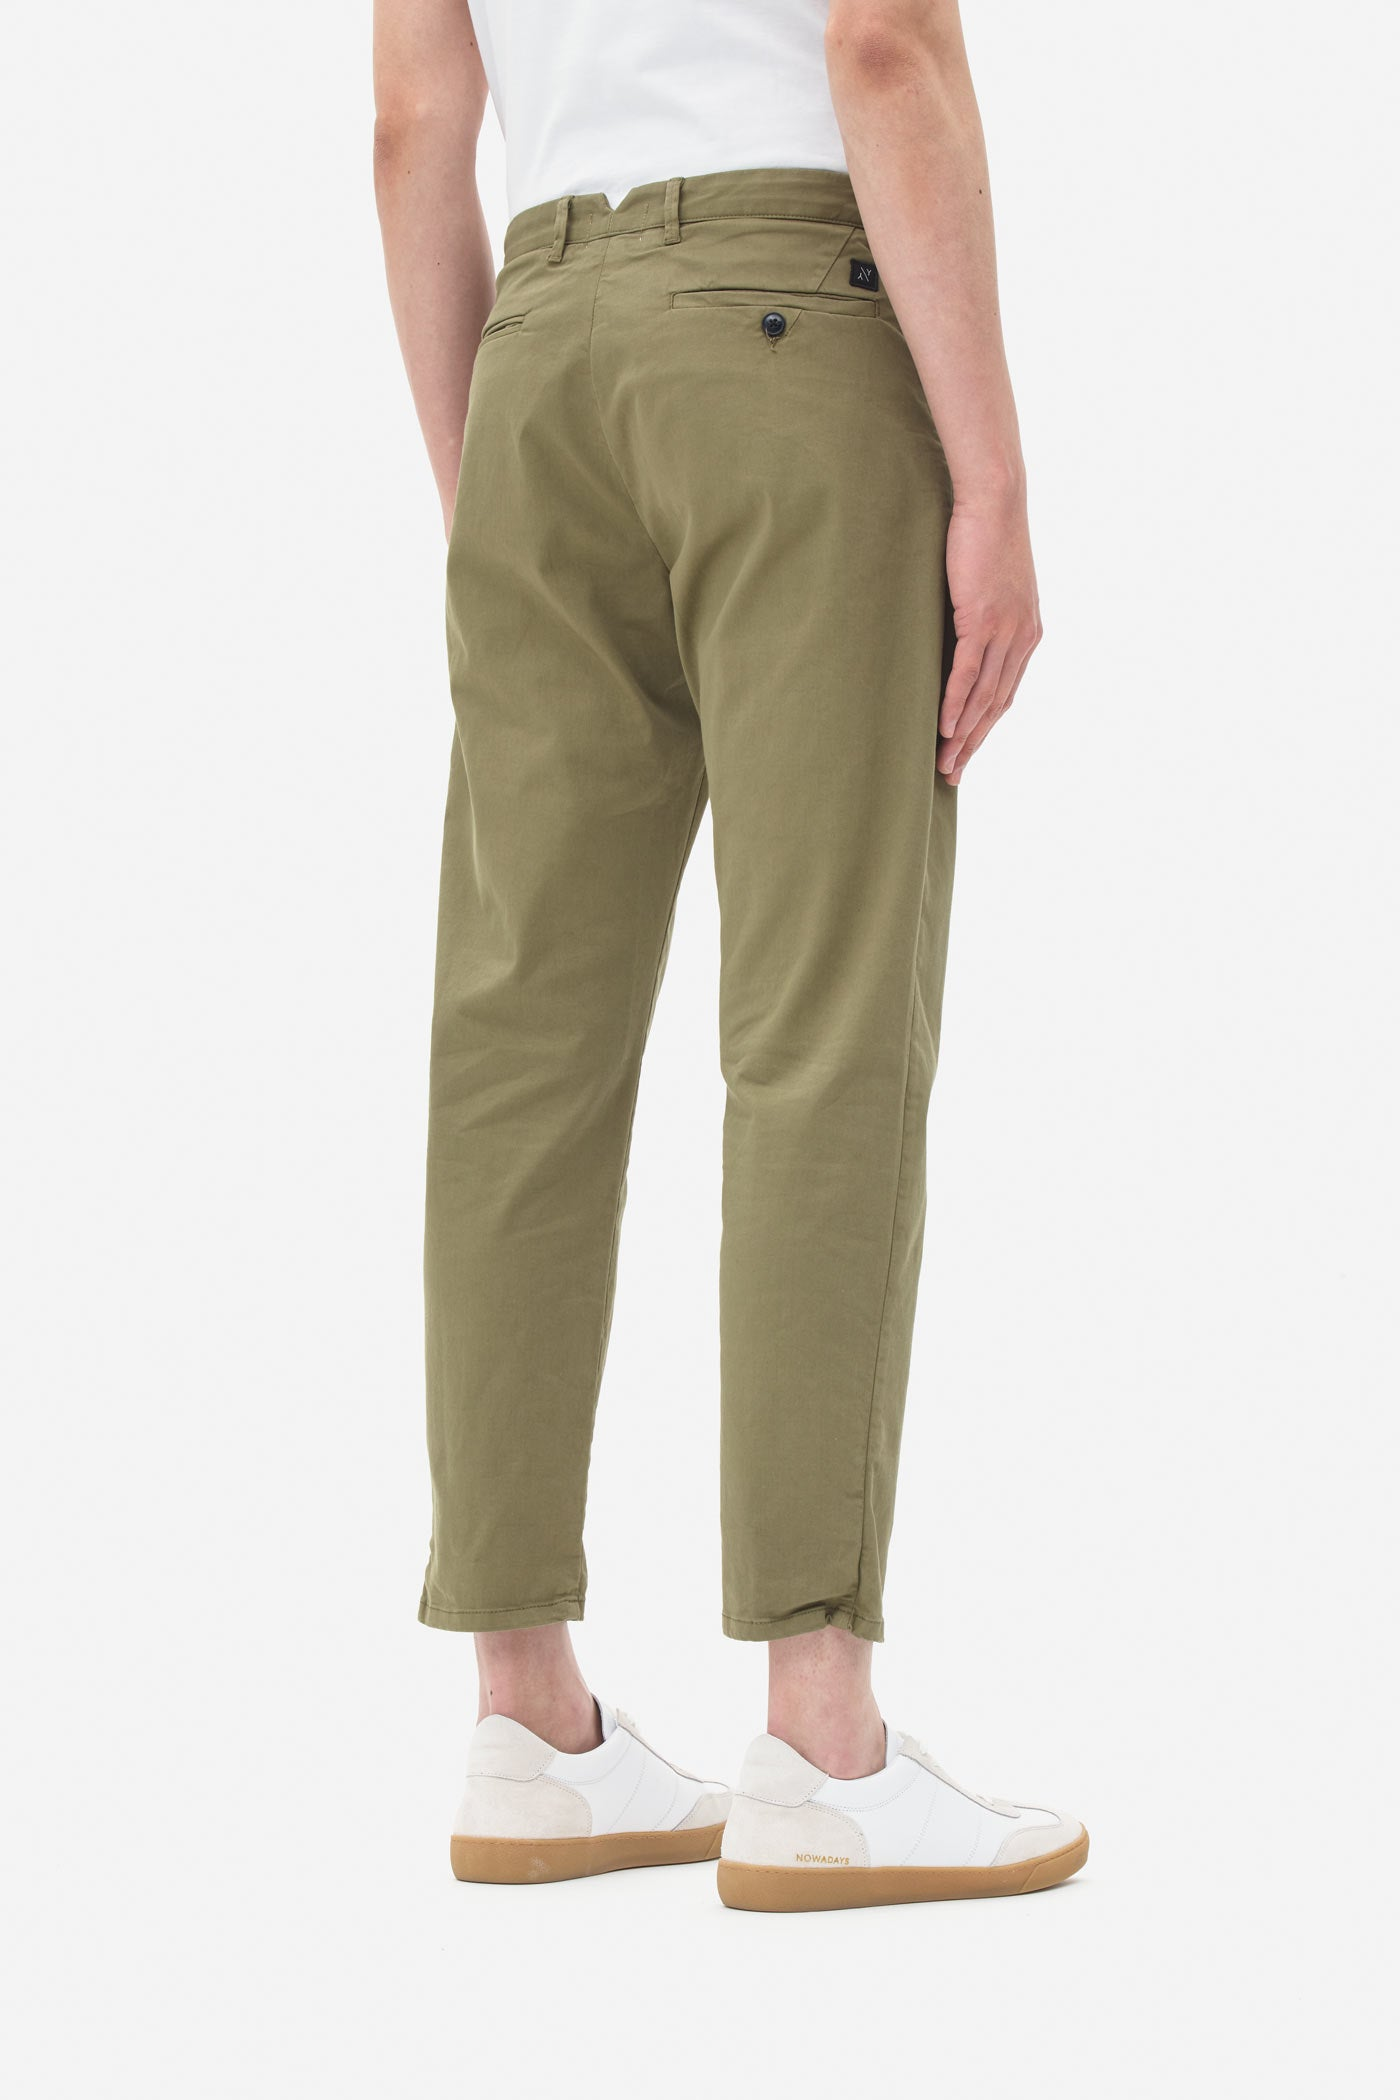 Single Pleat Pants burnt olive